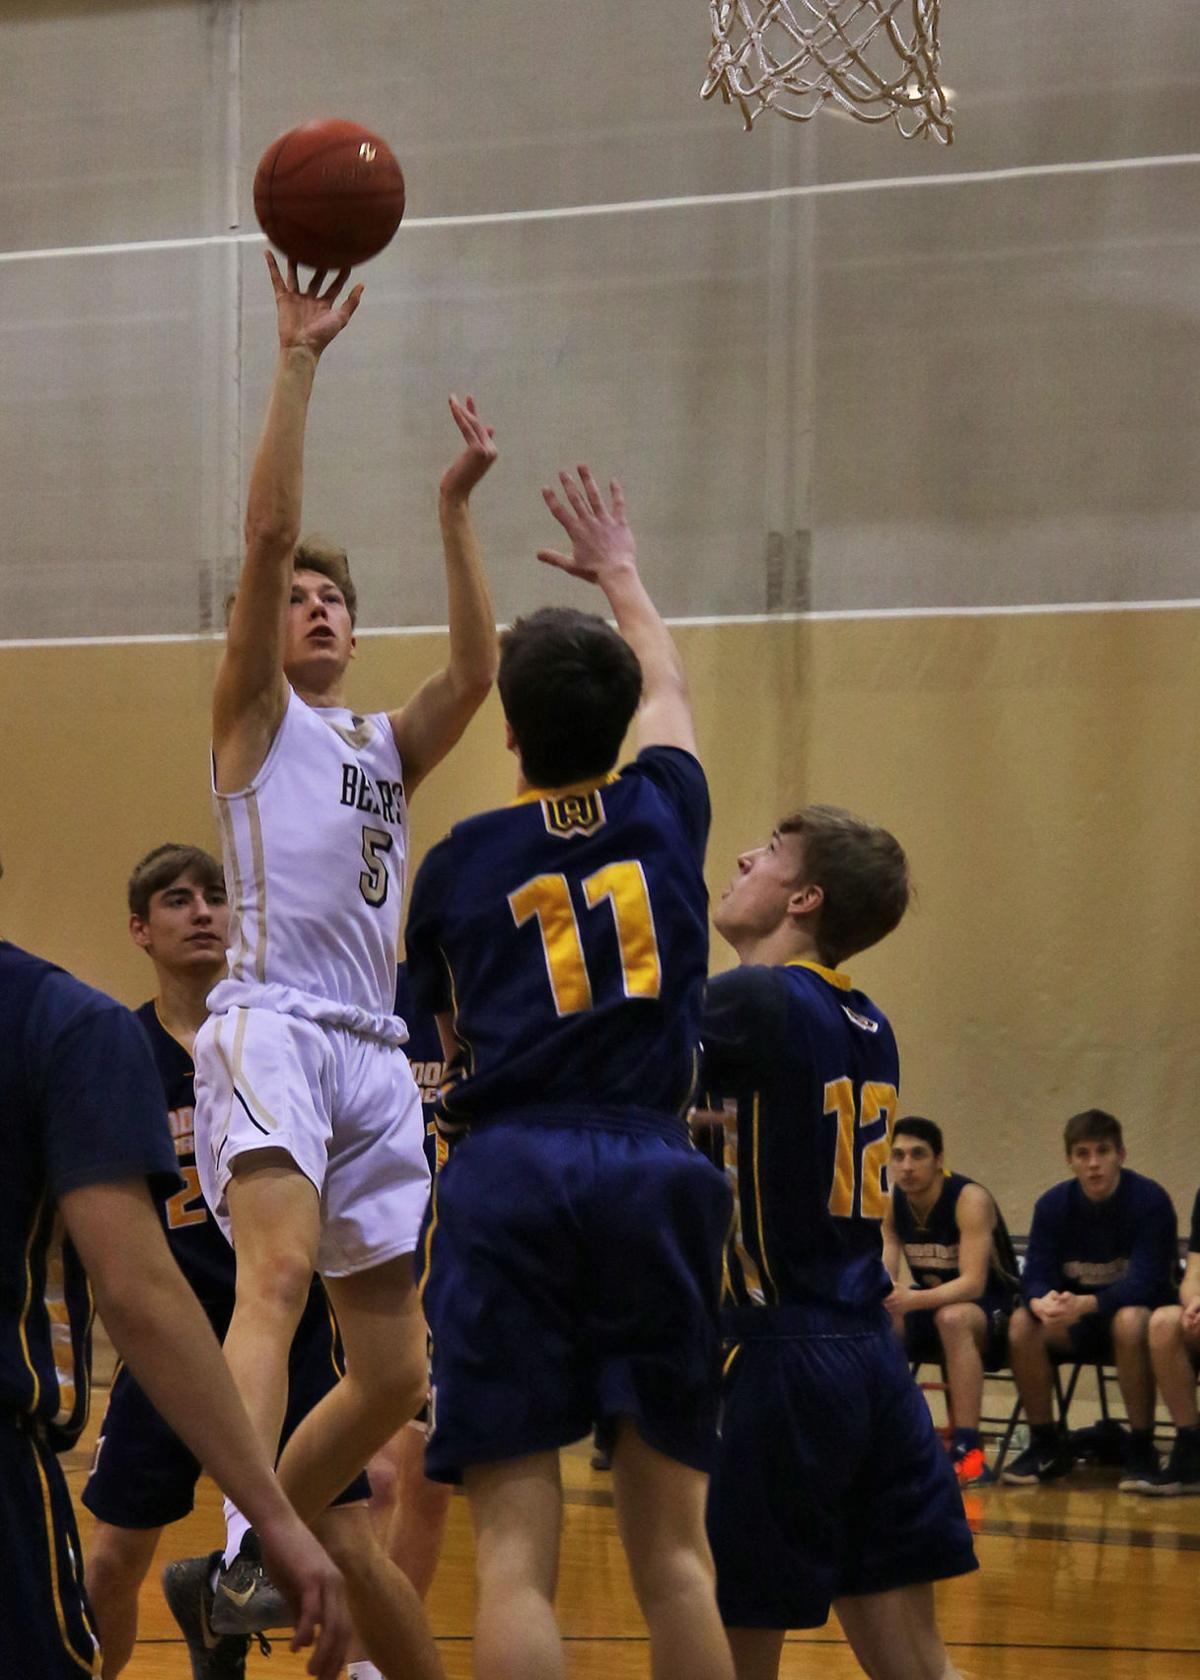 Stonington's Zach Scott (5) shoots over the reach of Woodstock Academy's Nick Bedard (11) during the Stonington Bears vs Woodstock Academy Centaurs boys varsity basket ball game played Friday evening, February 14, 2020 at Stonington High School, Pawcatuck, CT. | Jackie L. Turner, Special to The Sun.